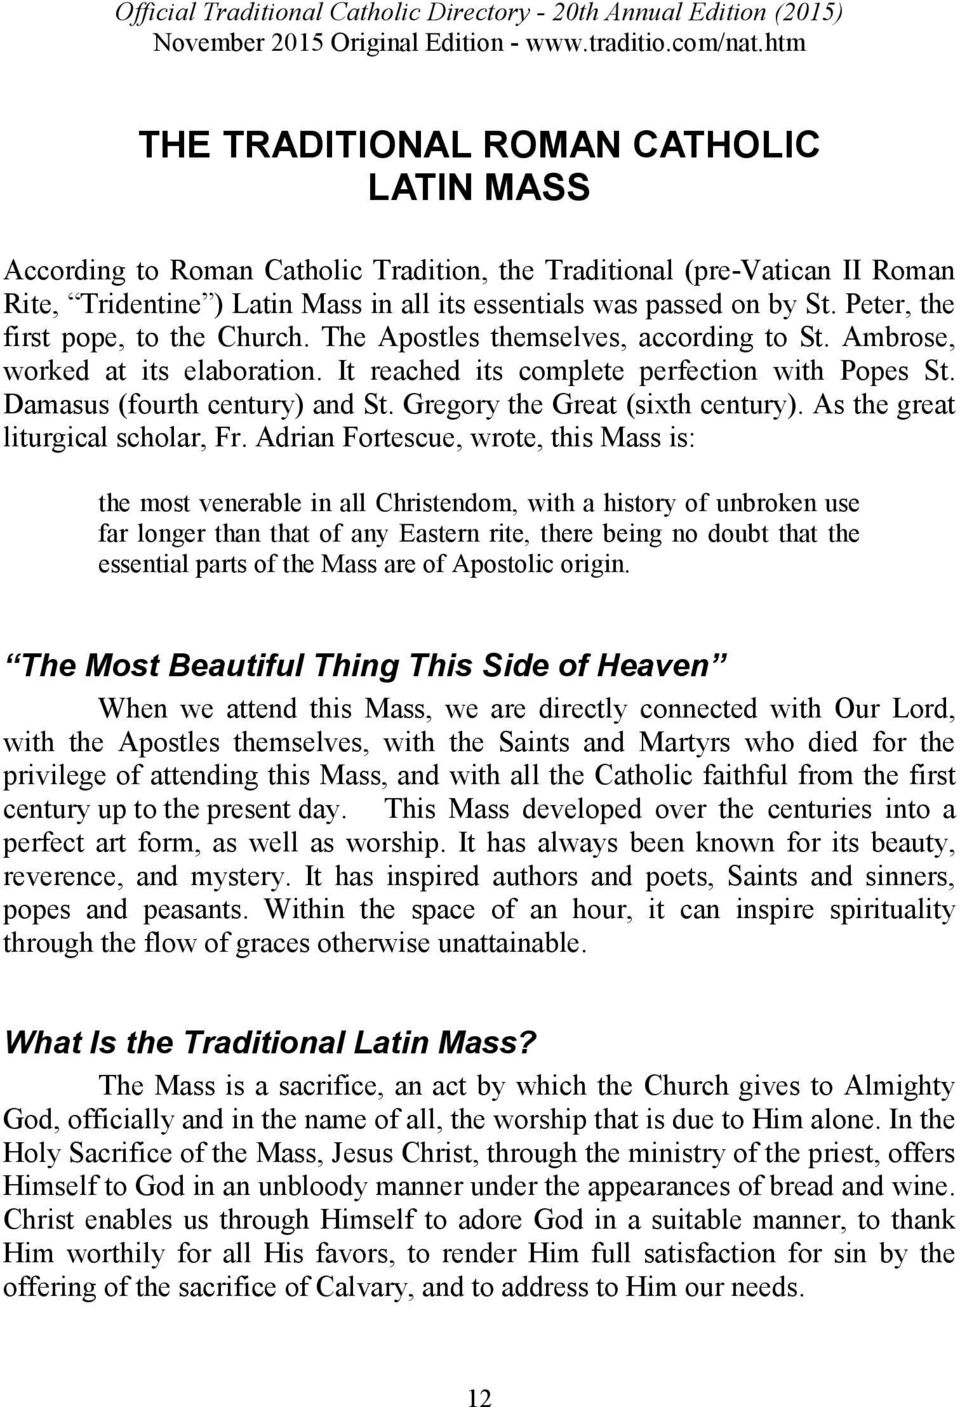 OFFICIAL TRADITIONAL CATHOLIC DIRECTORY - PDF